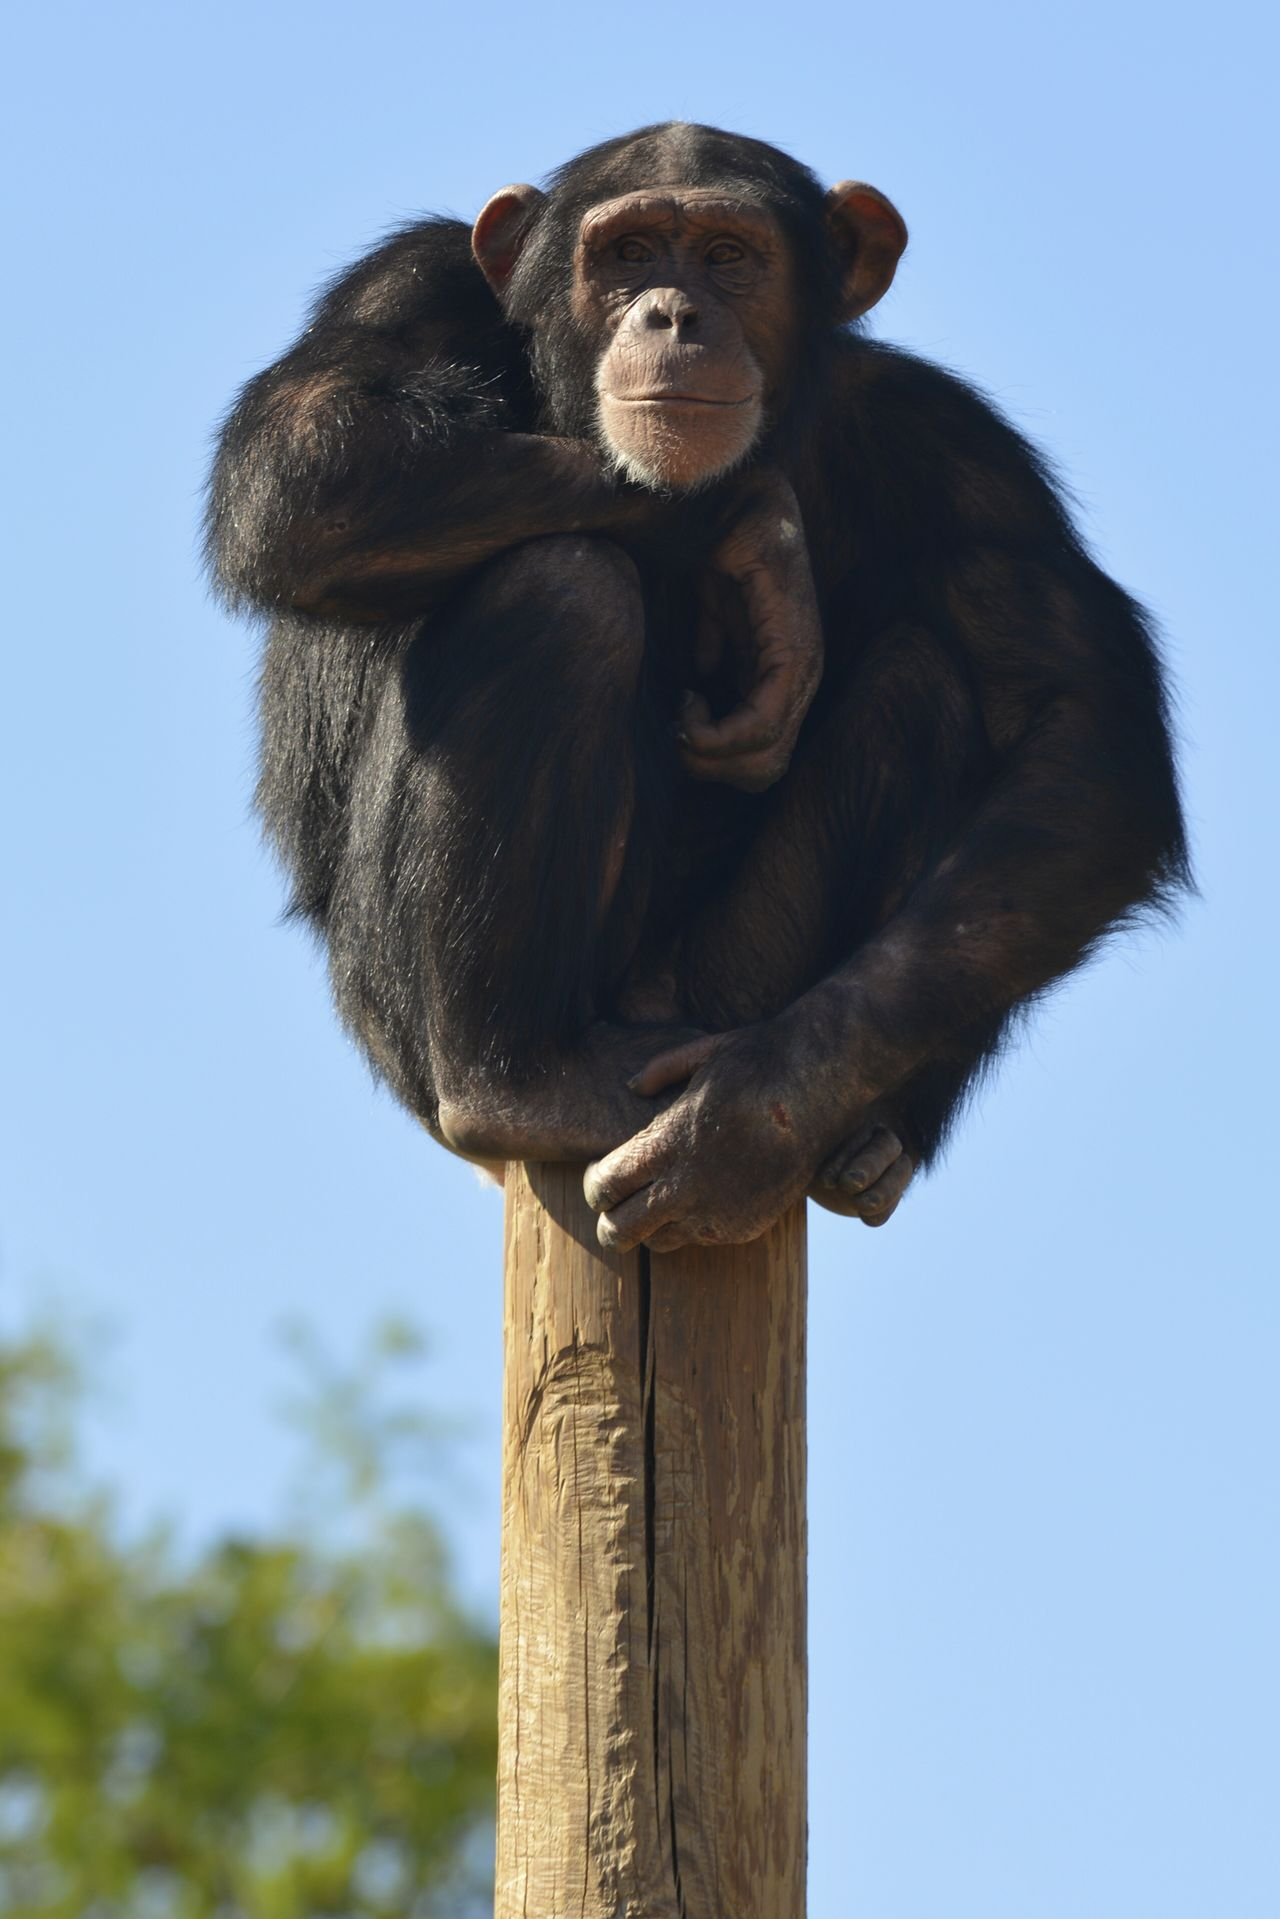 Chimpanzee Got Wood Sitting Pretty My Stick! Little Rock, Arkansas Little Rock Zoo Taking Photos Cheese! Hello World Color Photography Challenge Yourself Hi! Time With My Daughter